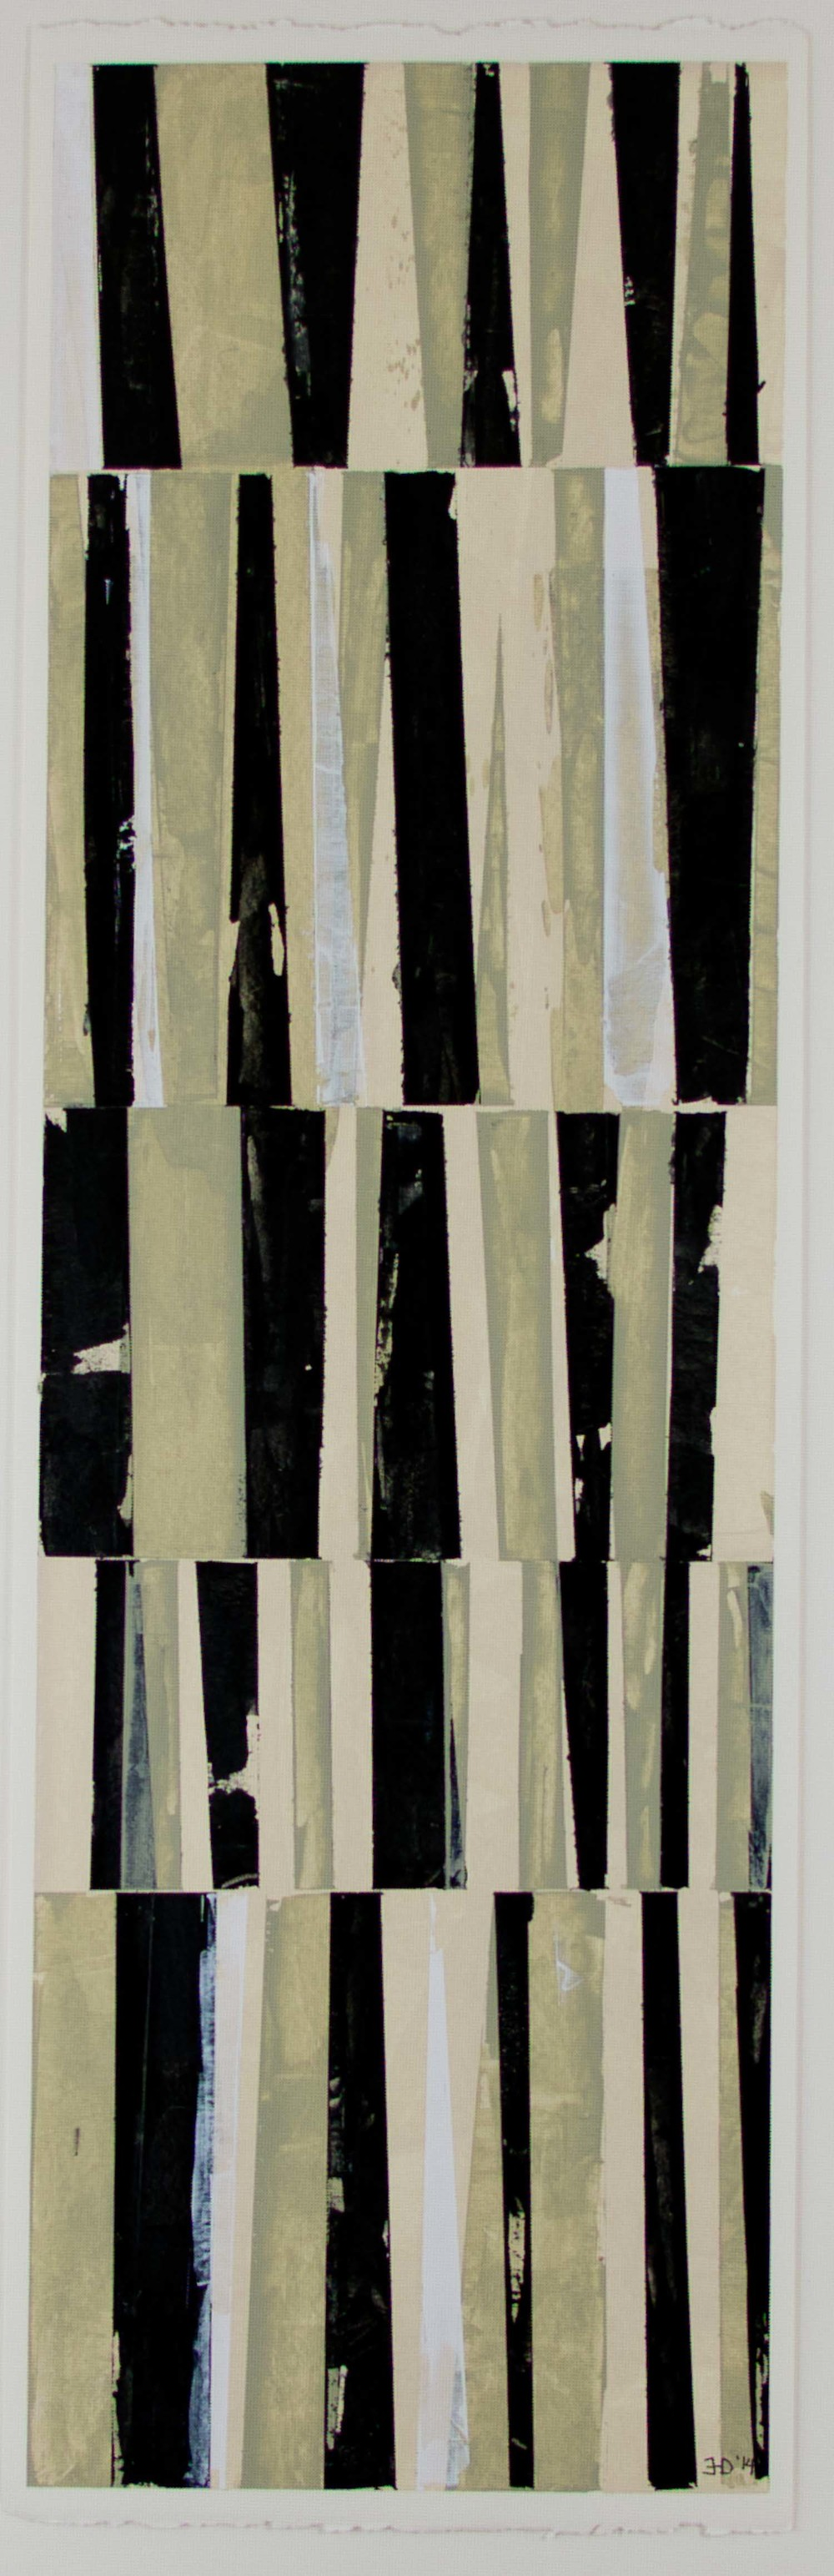 "Between the Lines #2   acrylic on paper, matted and framed, 16 3/8"" x 32""  $400"